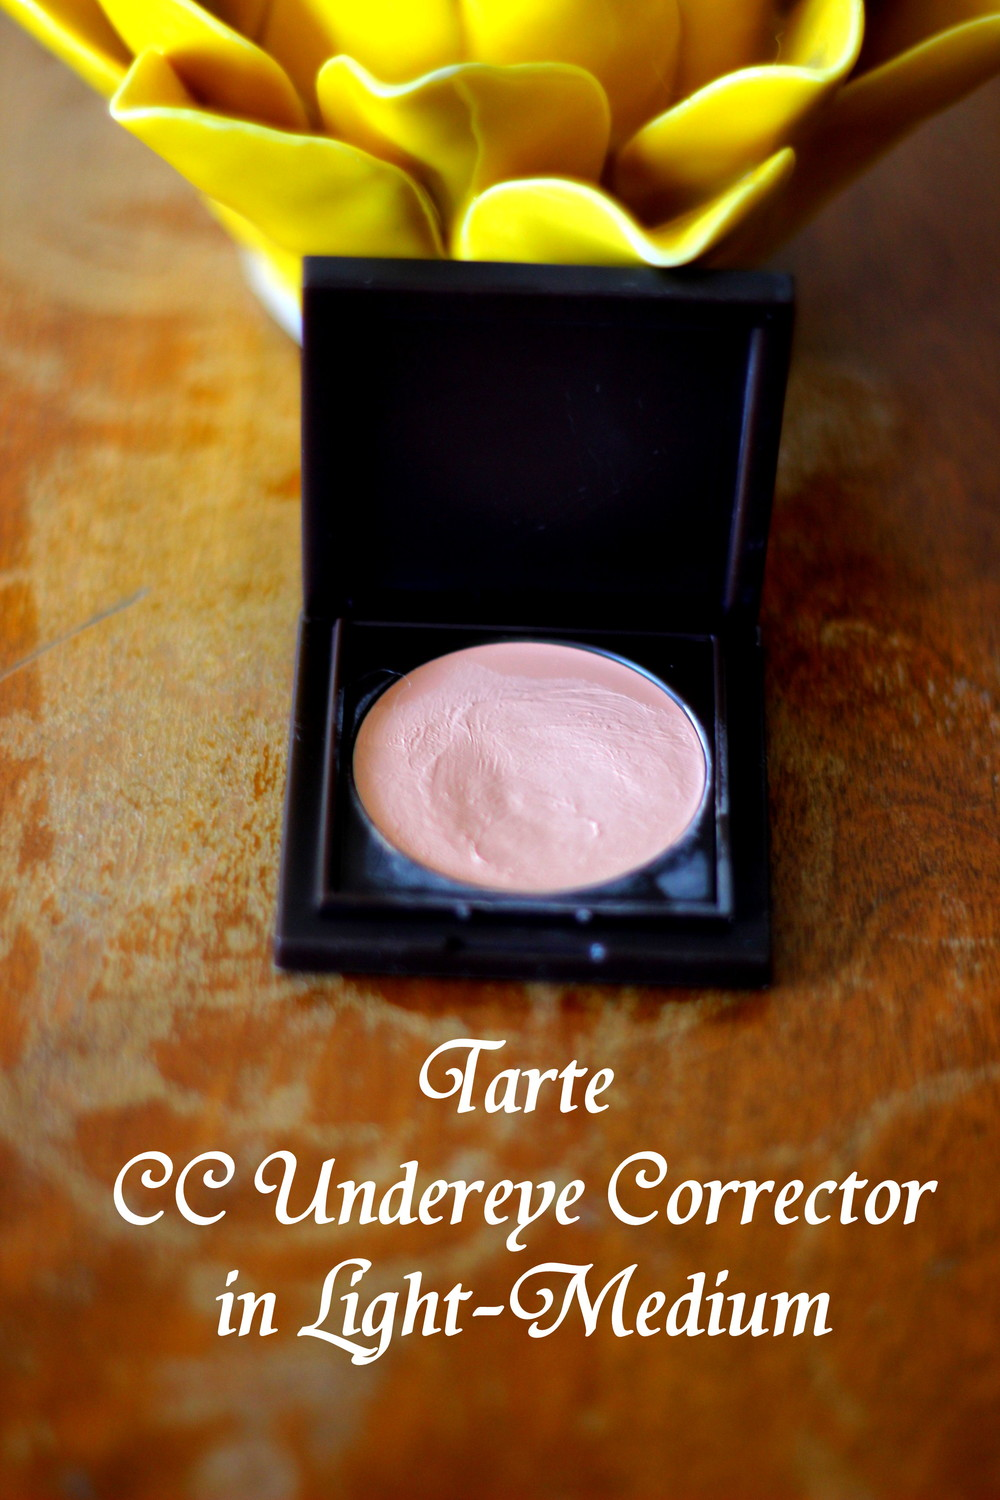 Tarte's CC Undereye Corrector comes in two shades: Light-Medium & Medium-Dark which is a bit of a let down... // Kaleidoscopes & Polka Dots